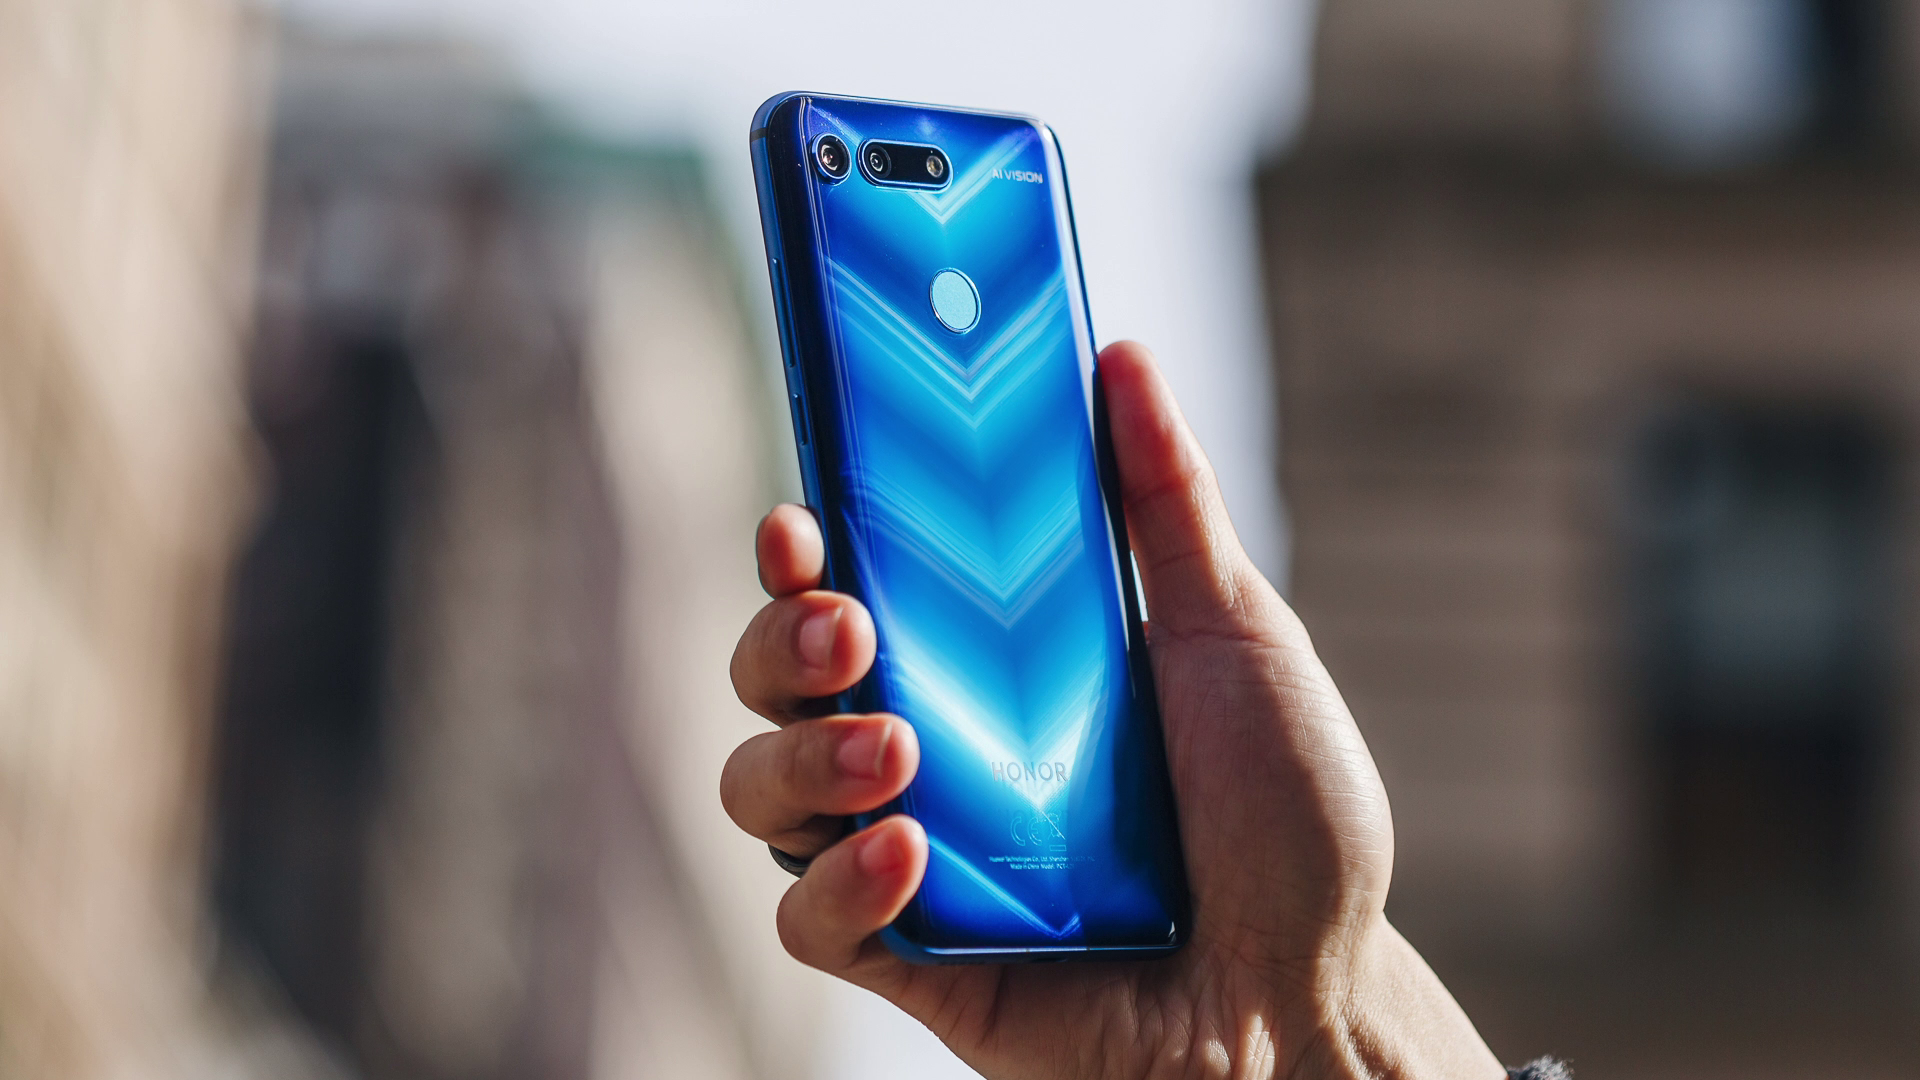 Honor View 20 Review , HD Wallpaper & Backgrounds